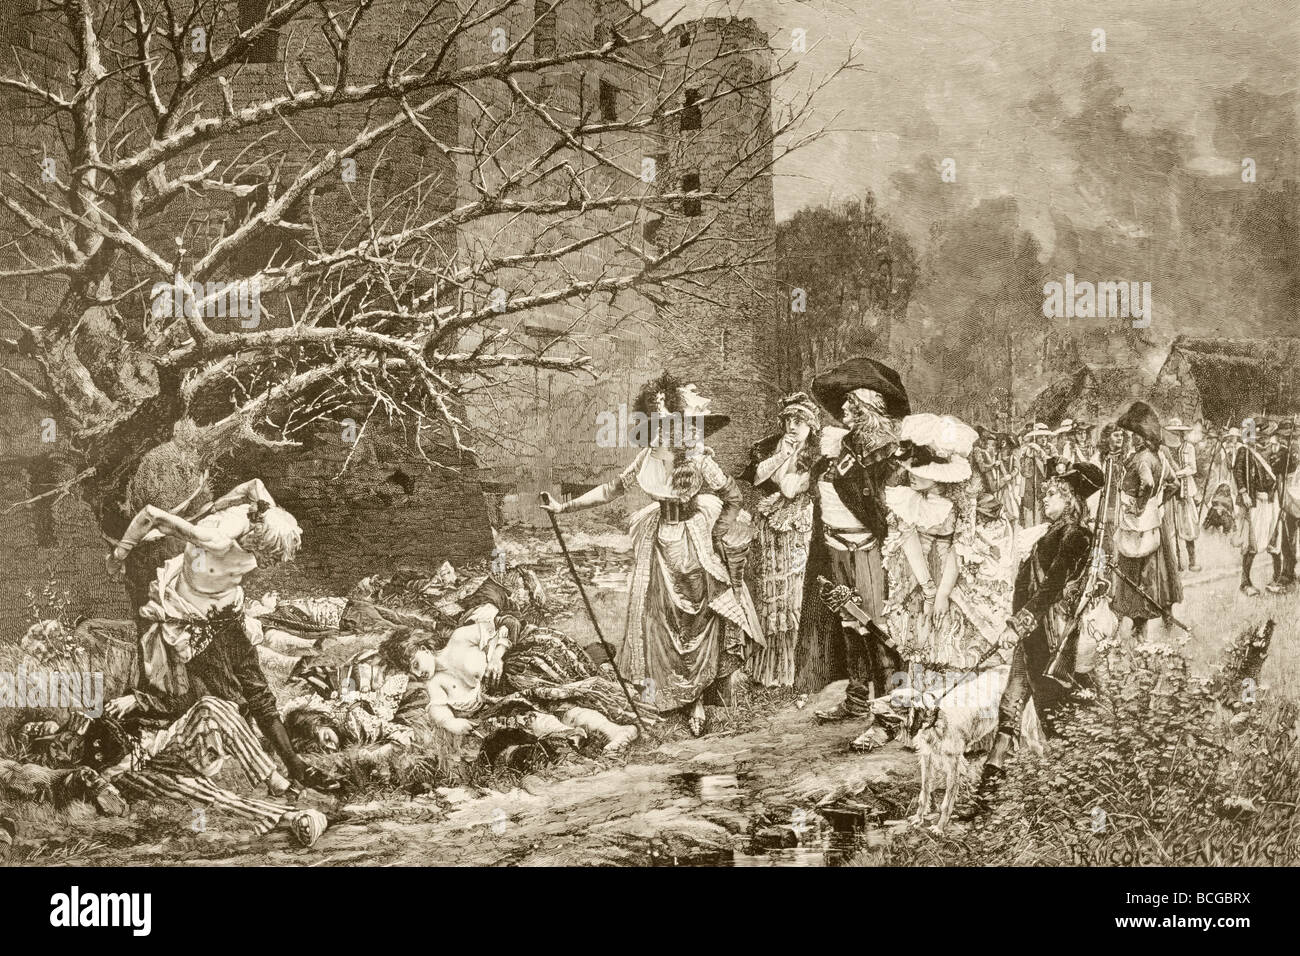 The massacre of Machecoul, France during the French Revolution. - Stock Image